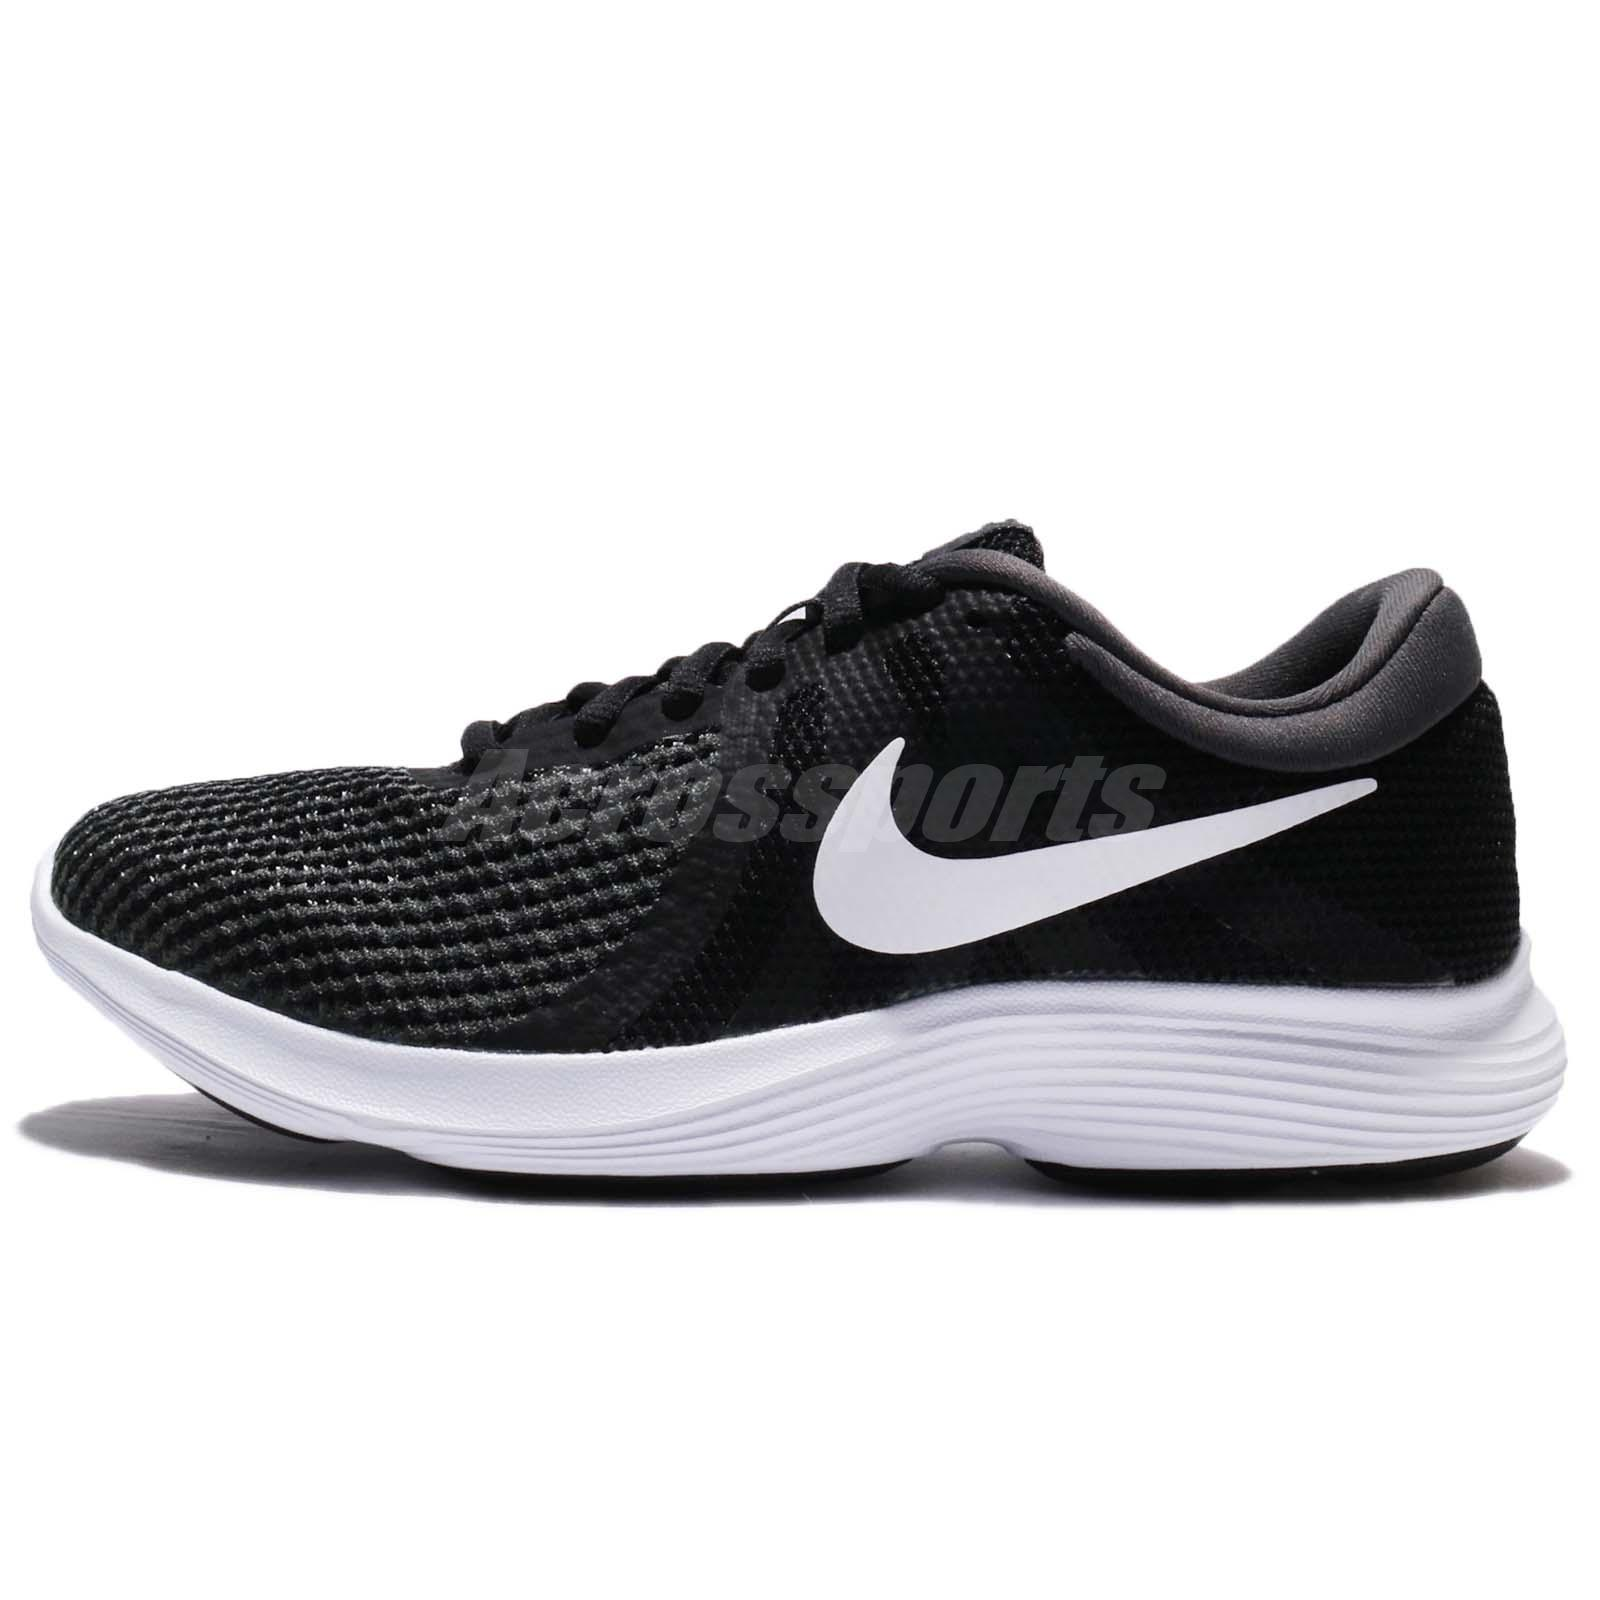 13e50e4566b9 Nike Wmns Revolution 4 IV Black White Women Running Shoes Sneakers 908999- 001